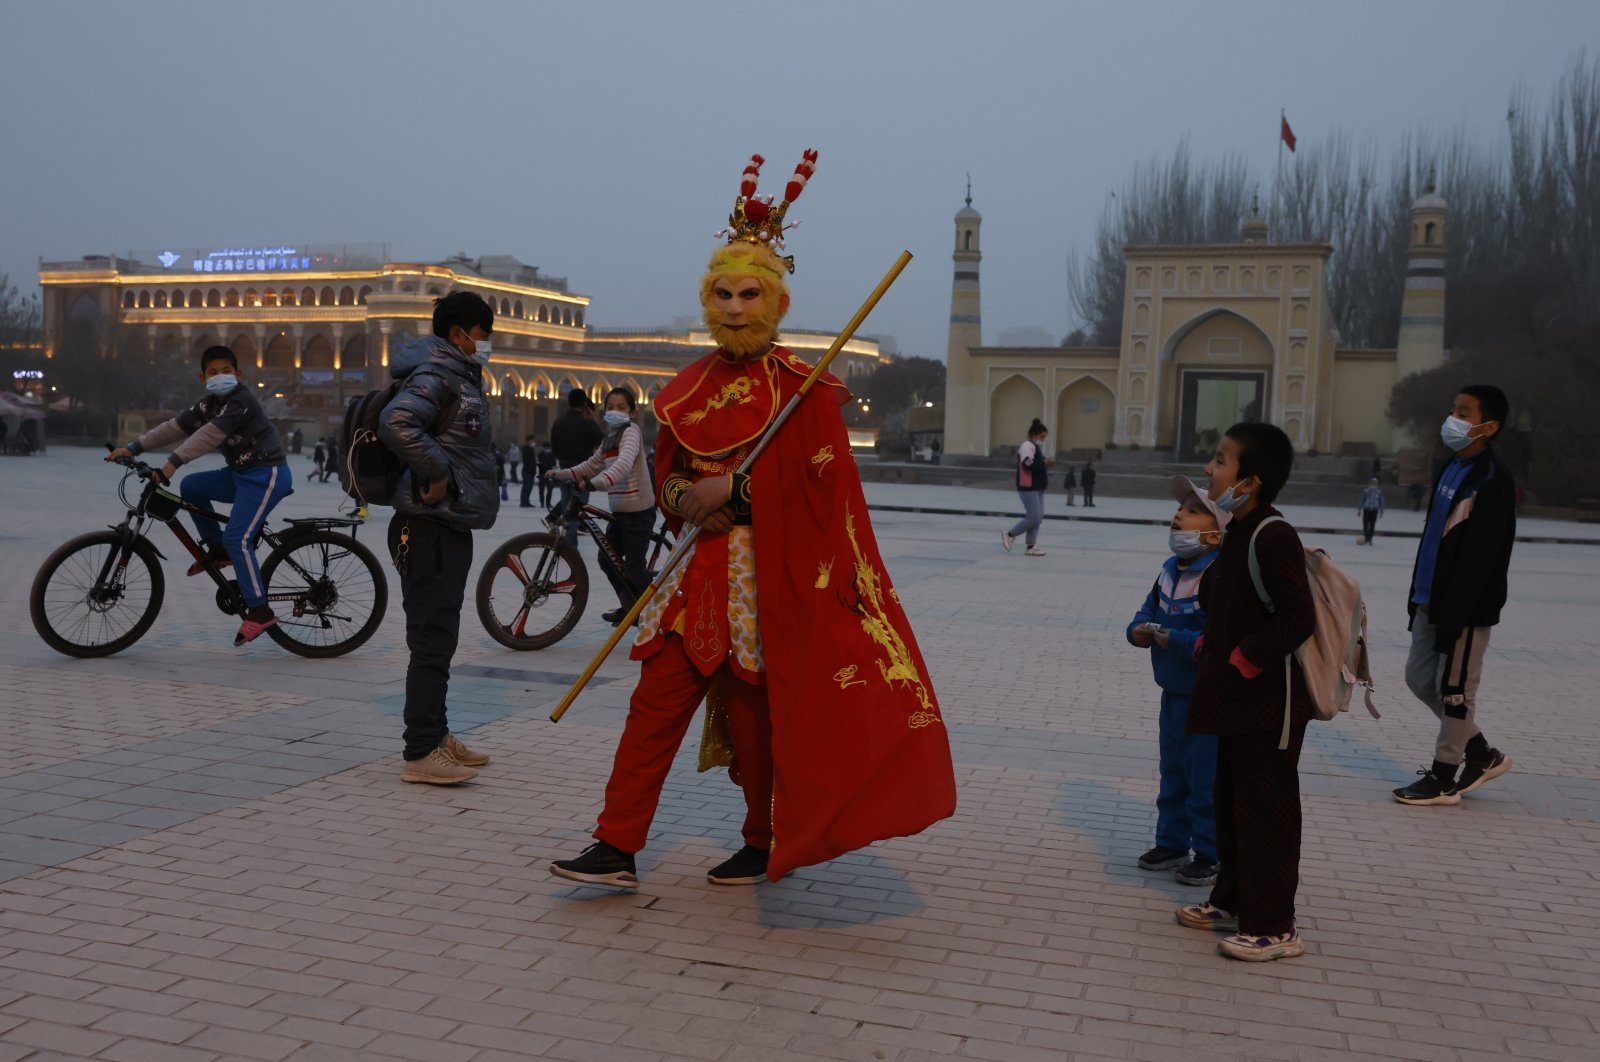 A performer dressed as the monkey god from a Chinese fable walks near a mosque as Uyghur children gaze upon him in Kashgar, Xinjiang Uyghur Autonomous Region, China, March 19, 2021. (AP Photo)